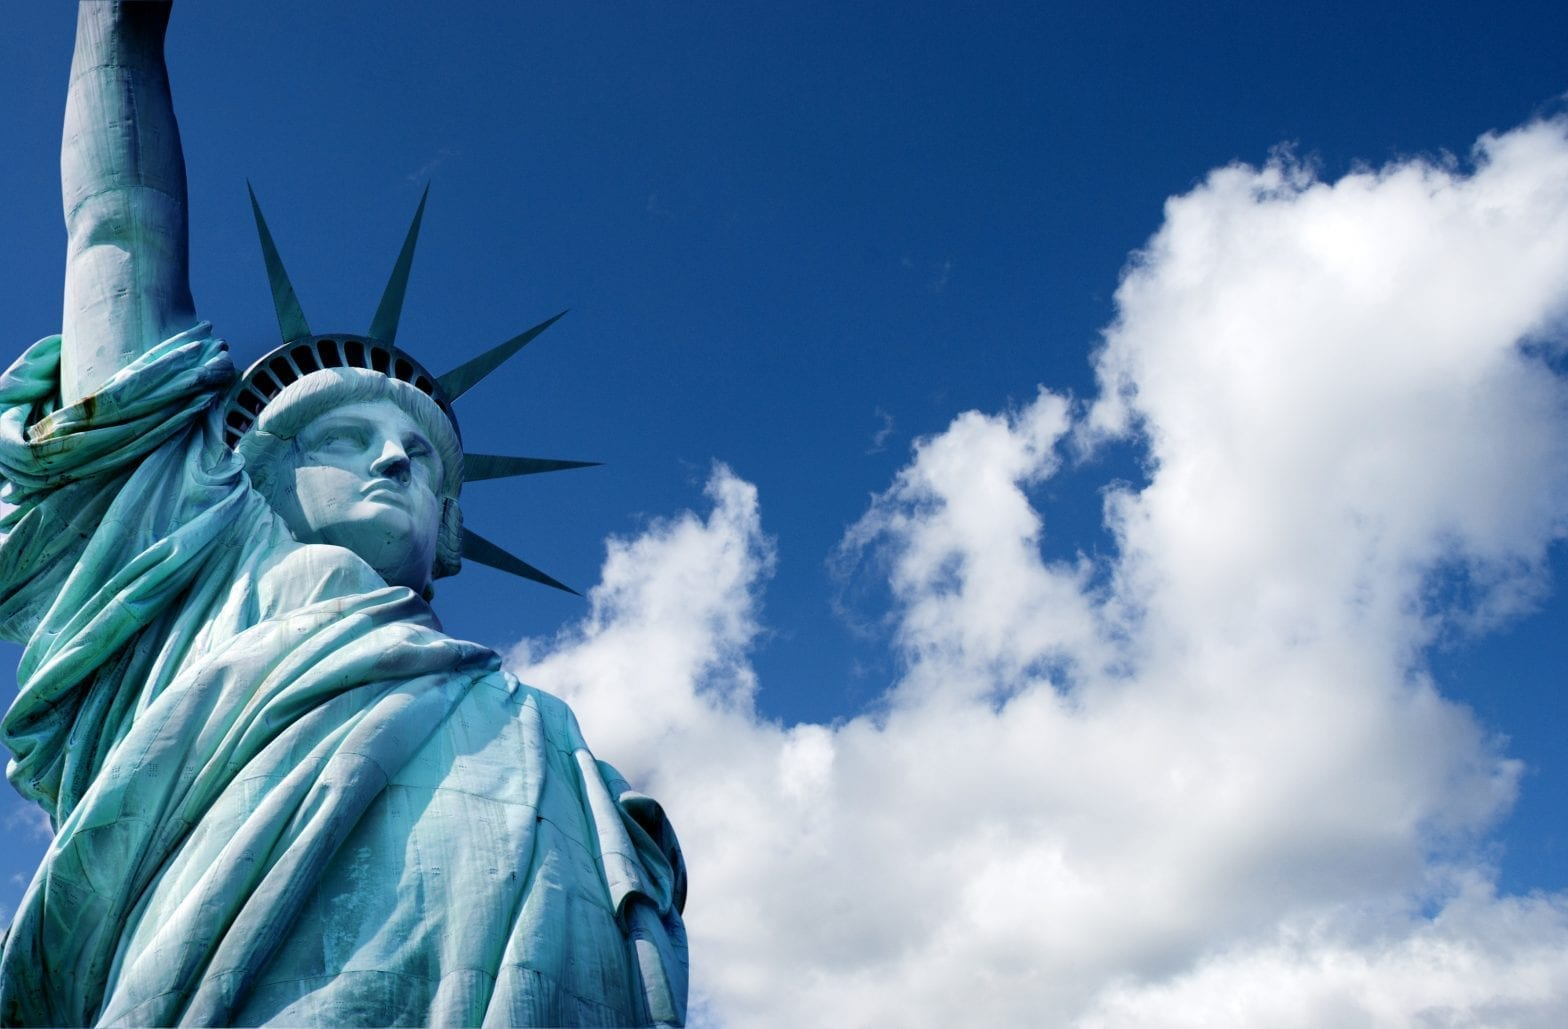 Immigration - Statue of Liberty